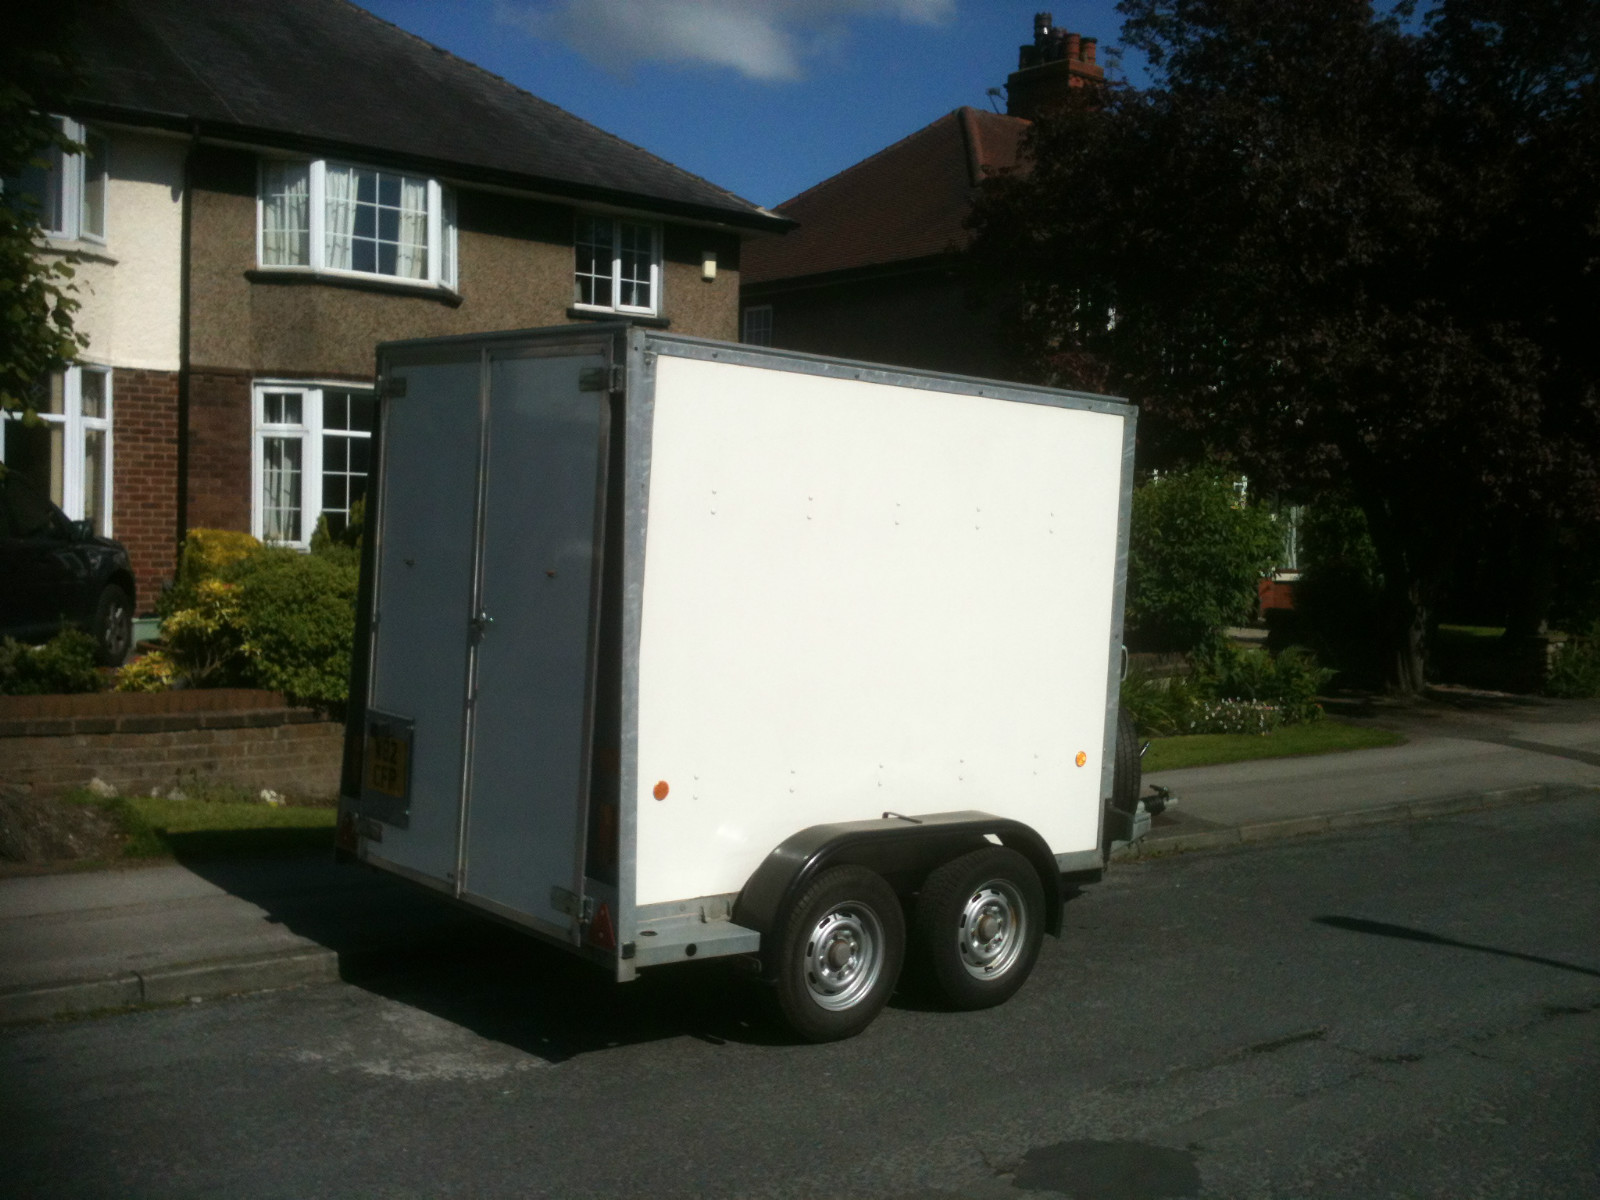 ebay scam hunter ifor williams bv85g box trailer. Black Bedroom Furniture Sets. Home Design Ideas